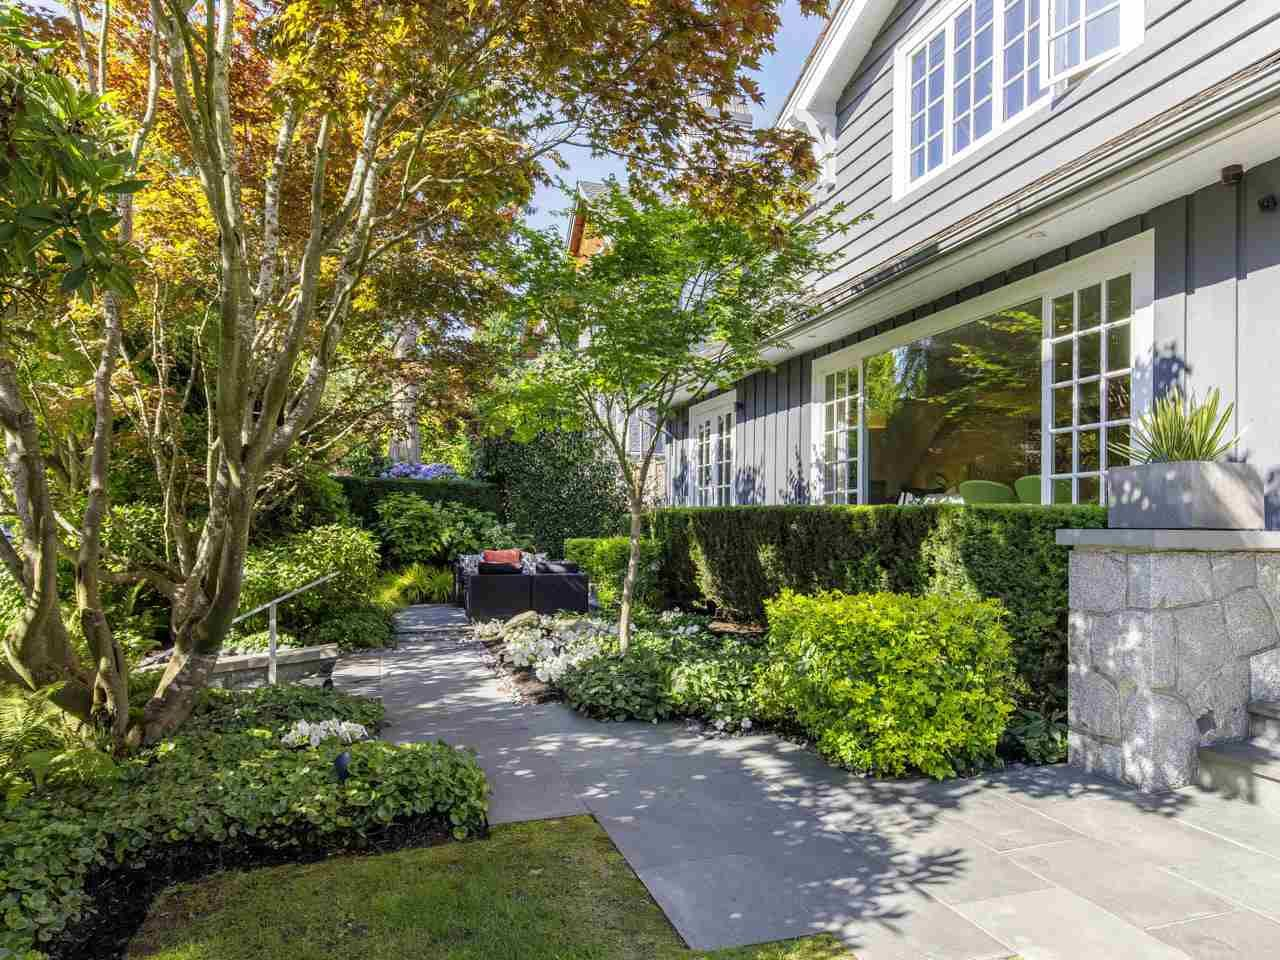 Main Photo: 6272 MACKENZIE STREET in Vancouver: Kerrisdale House for sale (Vancouver West)  : MLS®# R2477433